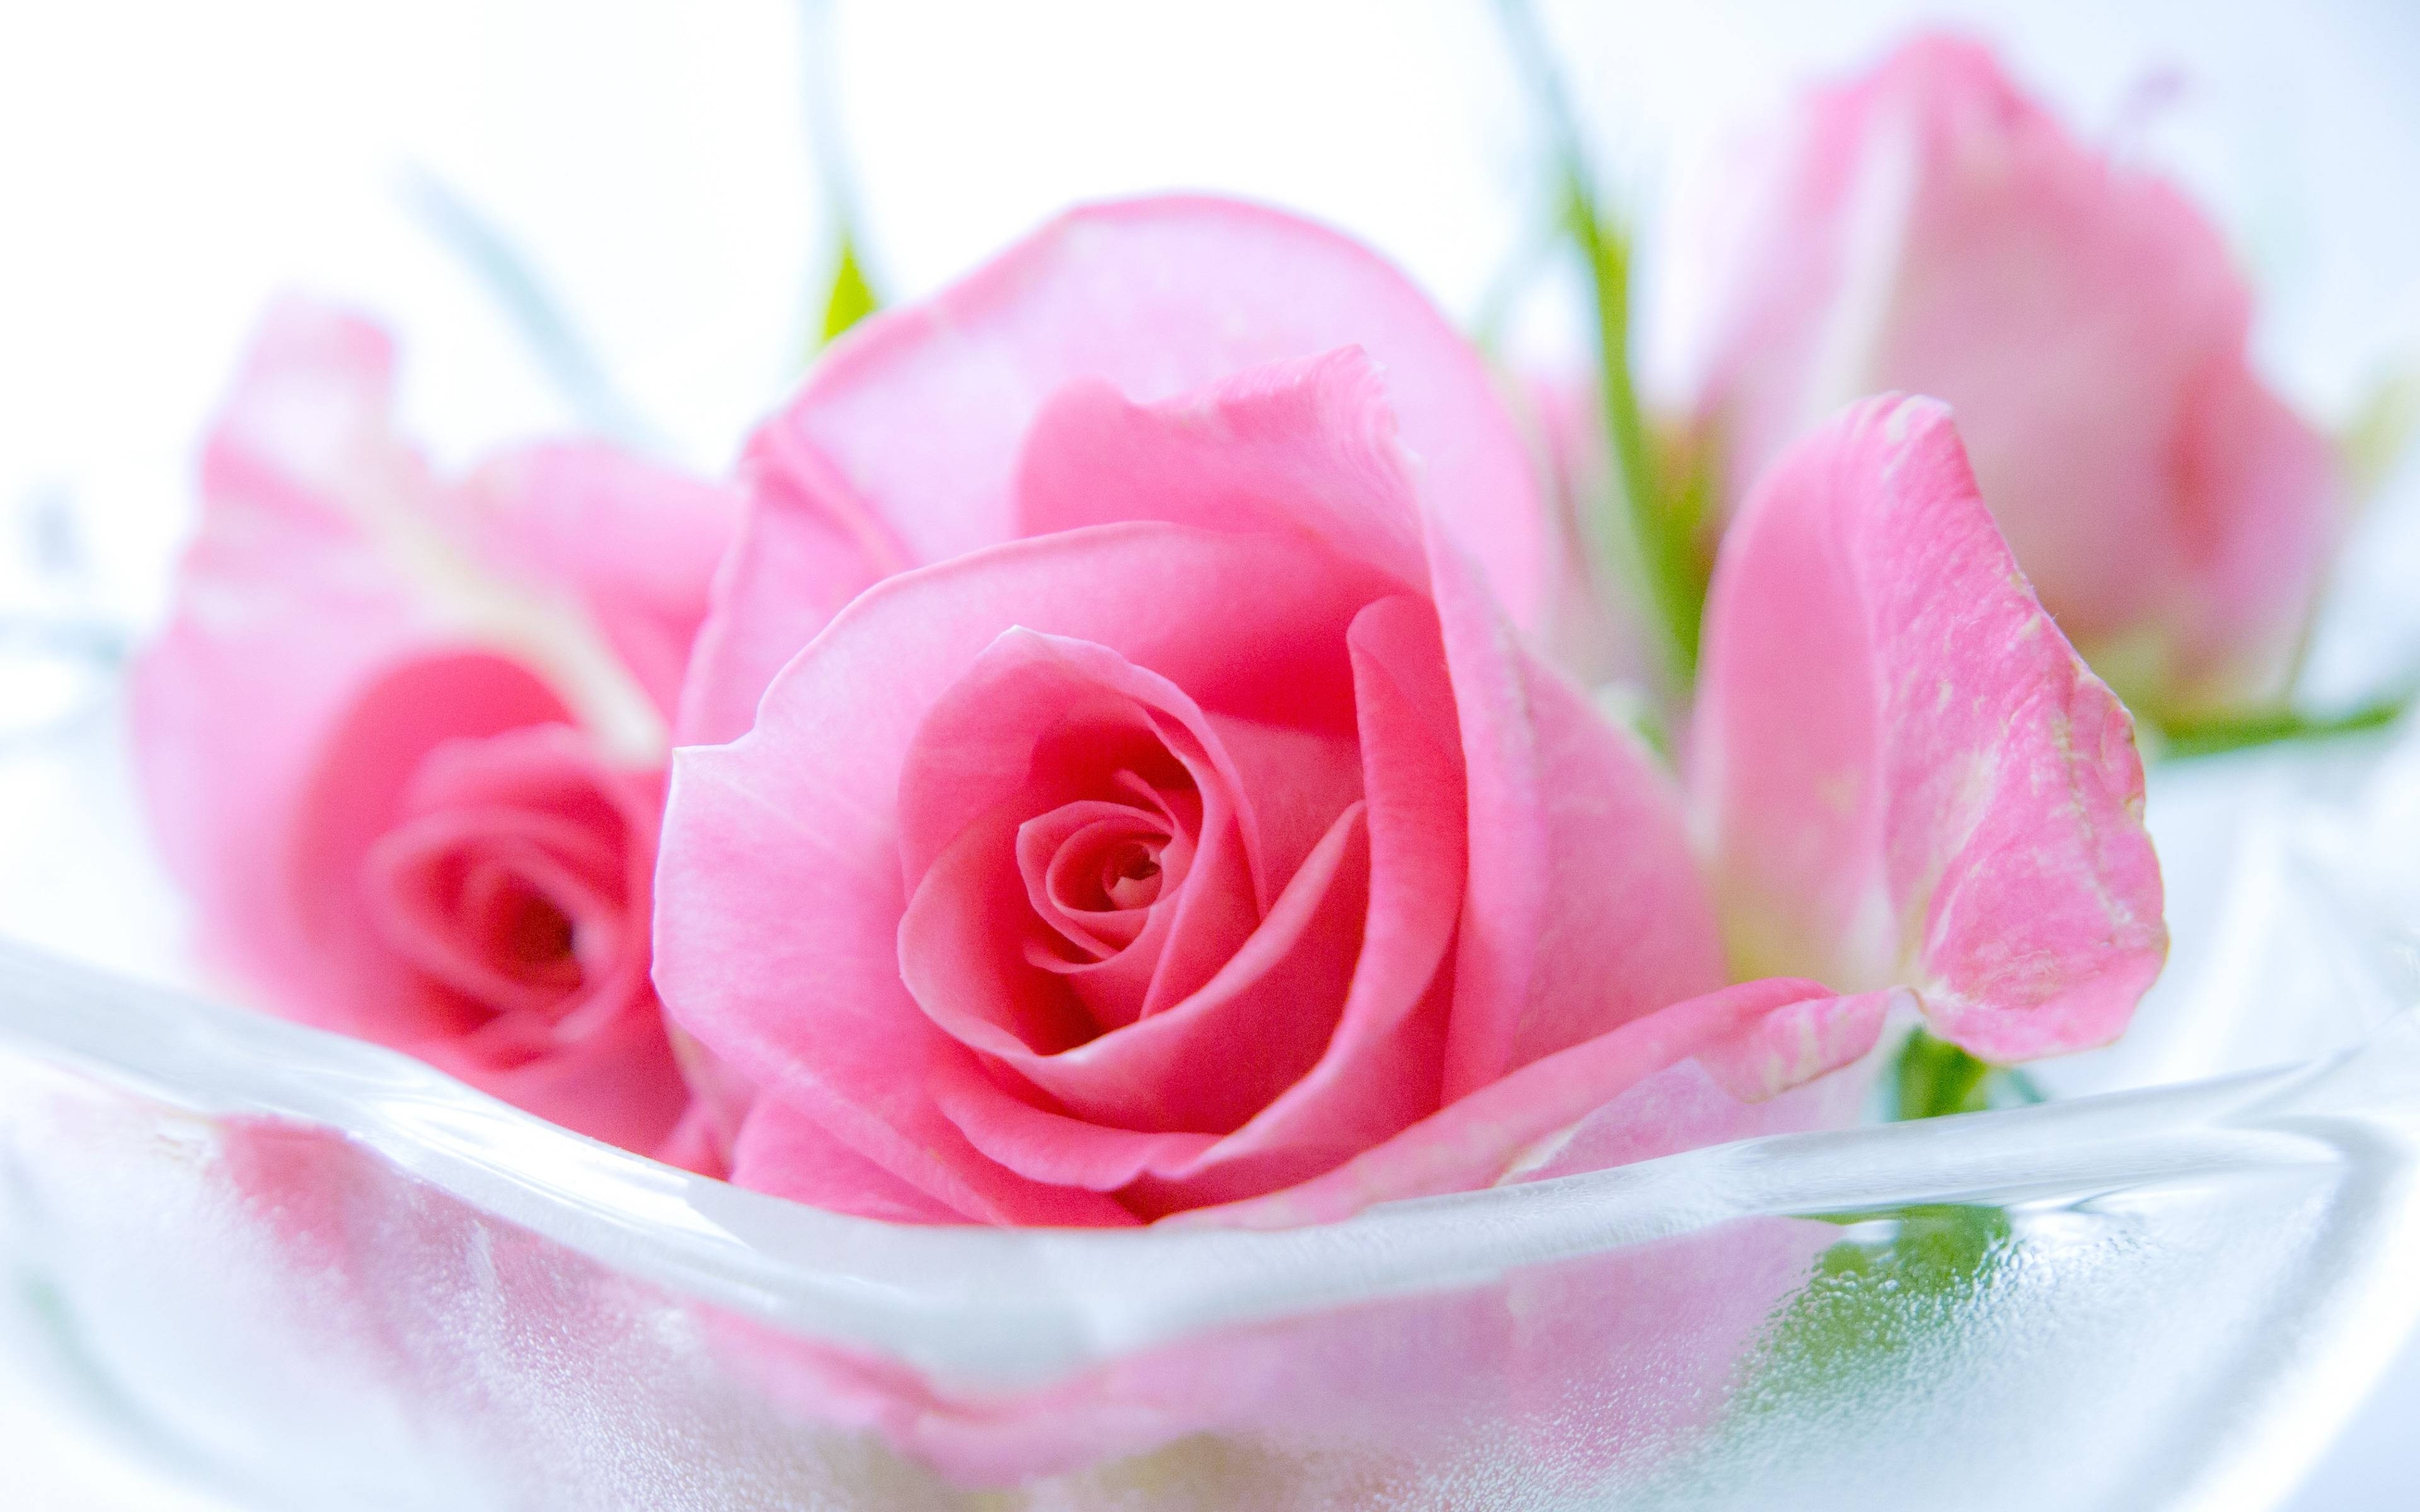 pink rose wallpapers images ~ desktop wallpaper box